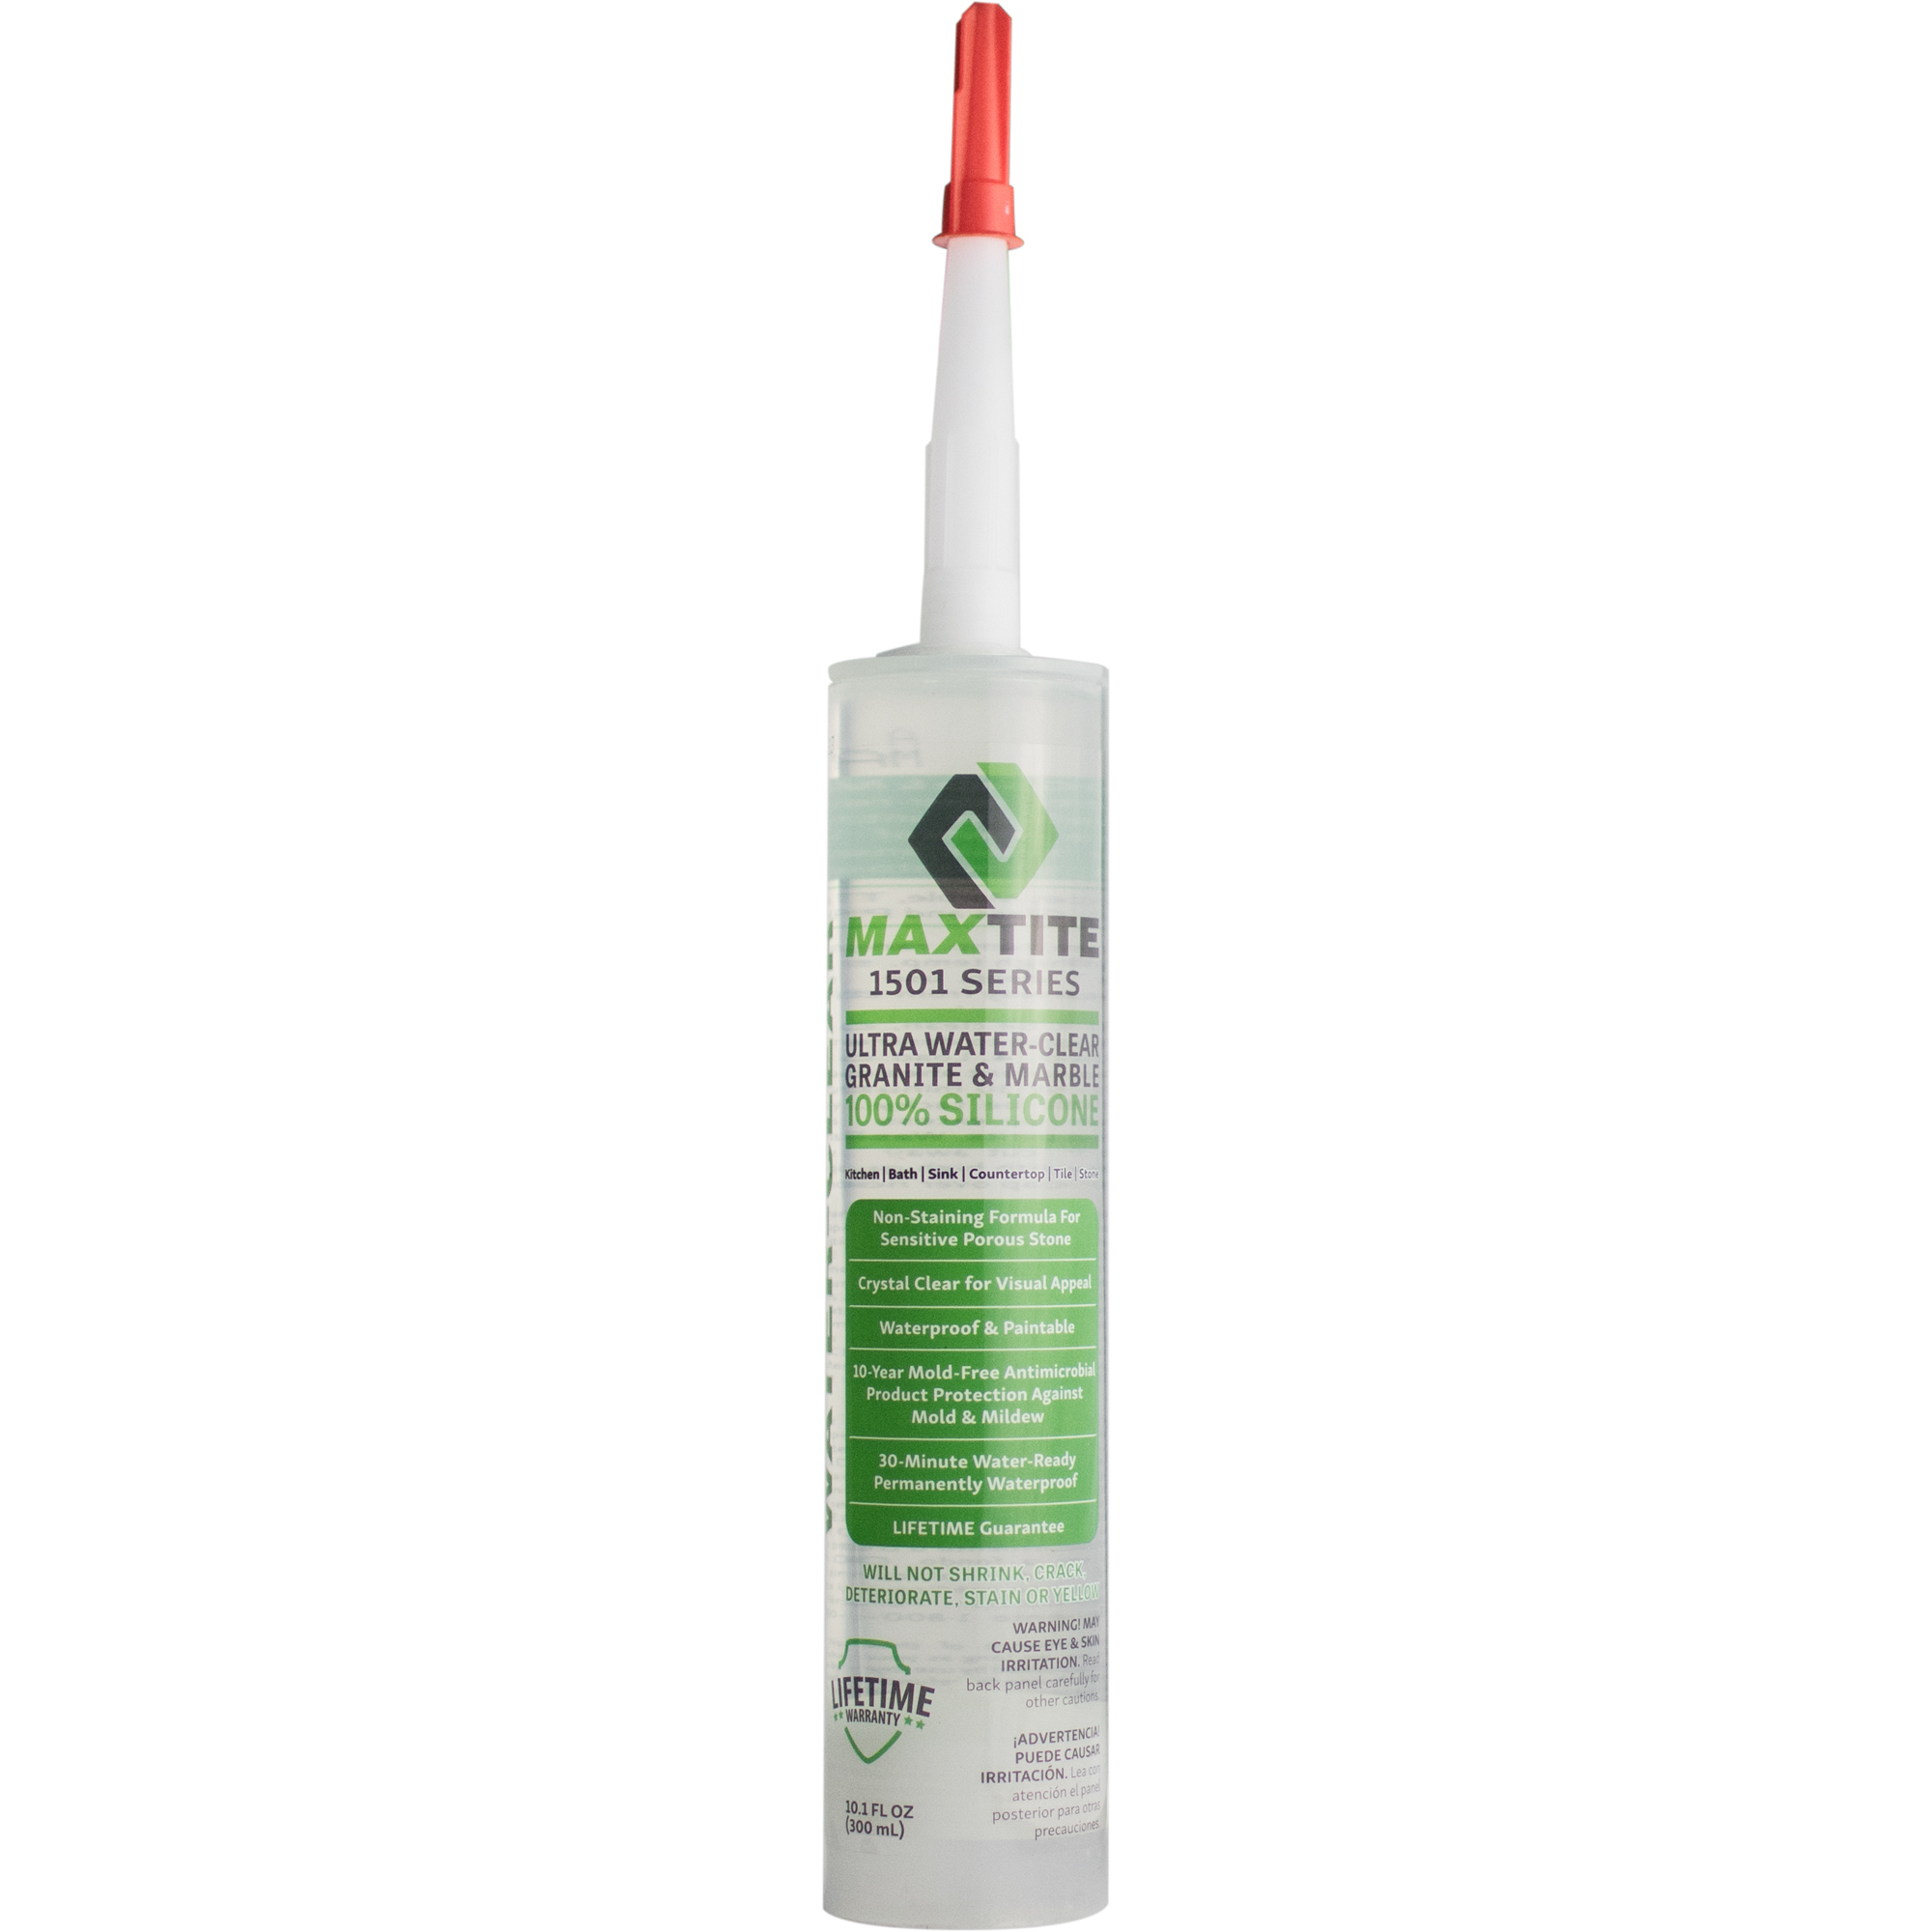 Caulk & Silicone Sealant